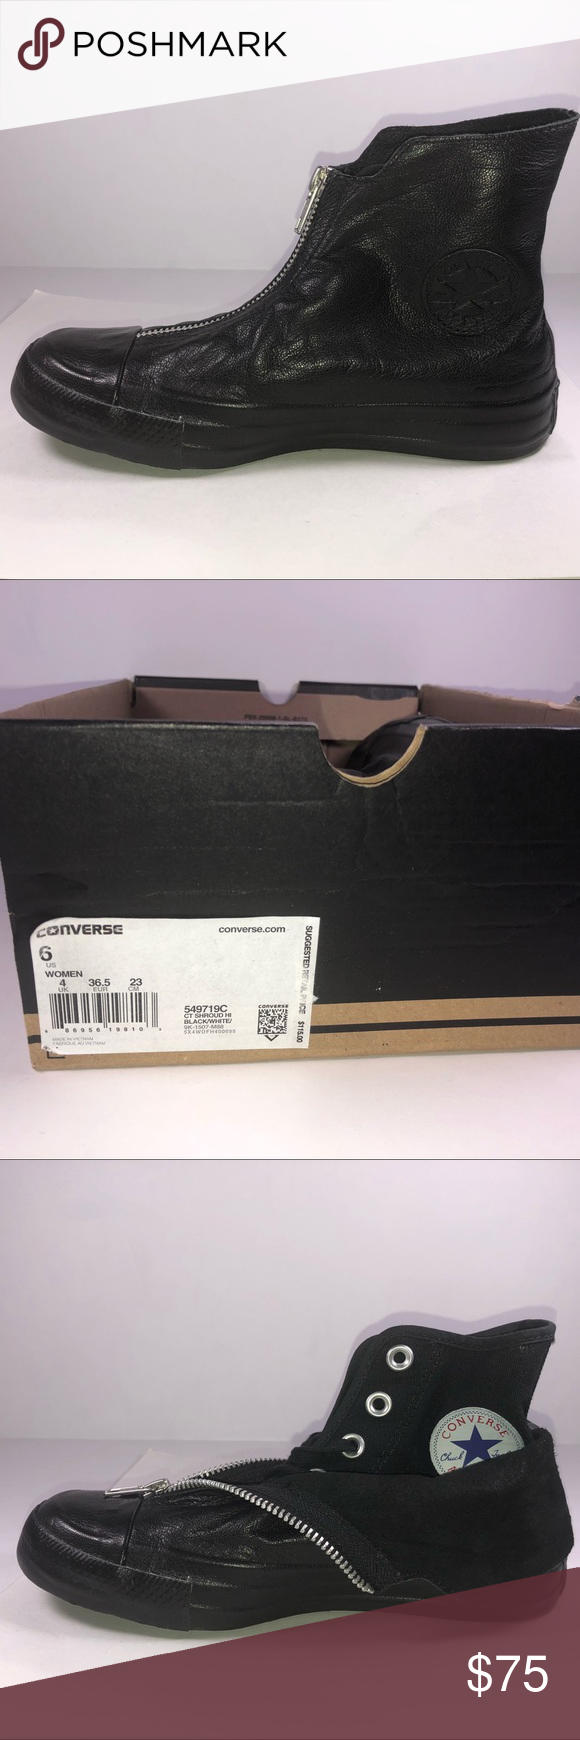 c013468fb831 Converse All Star Shroud High Top Leather Sneaker New With Damaged Box  Missing Lid See Pictures For Details. Converse Chuck Taylor All Star Shroud  High Top ...